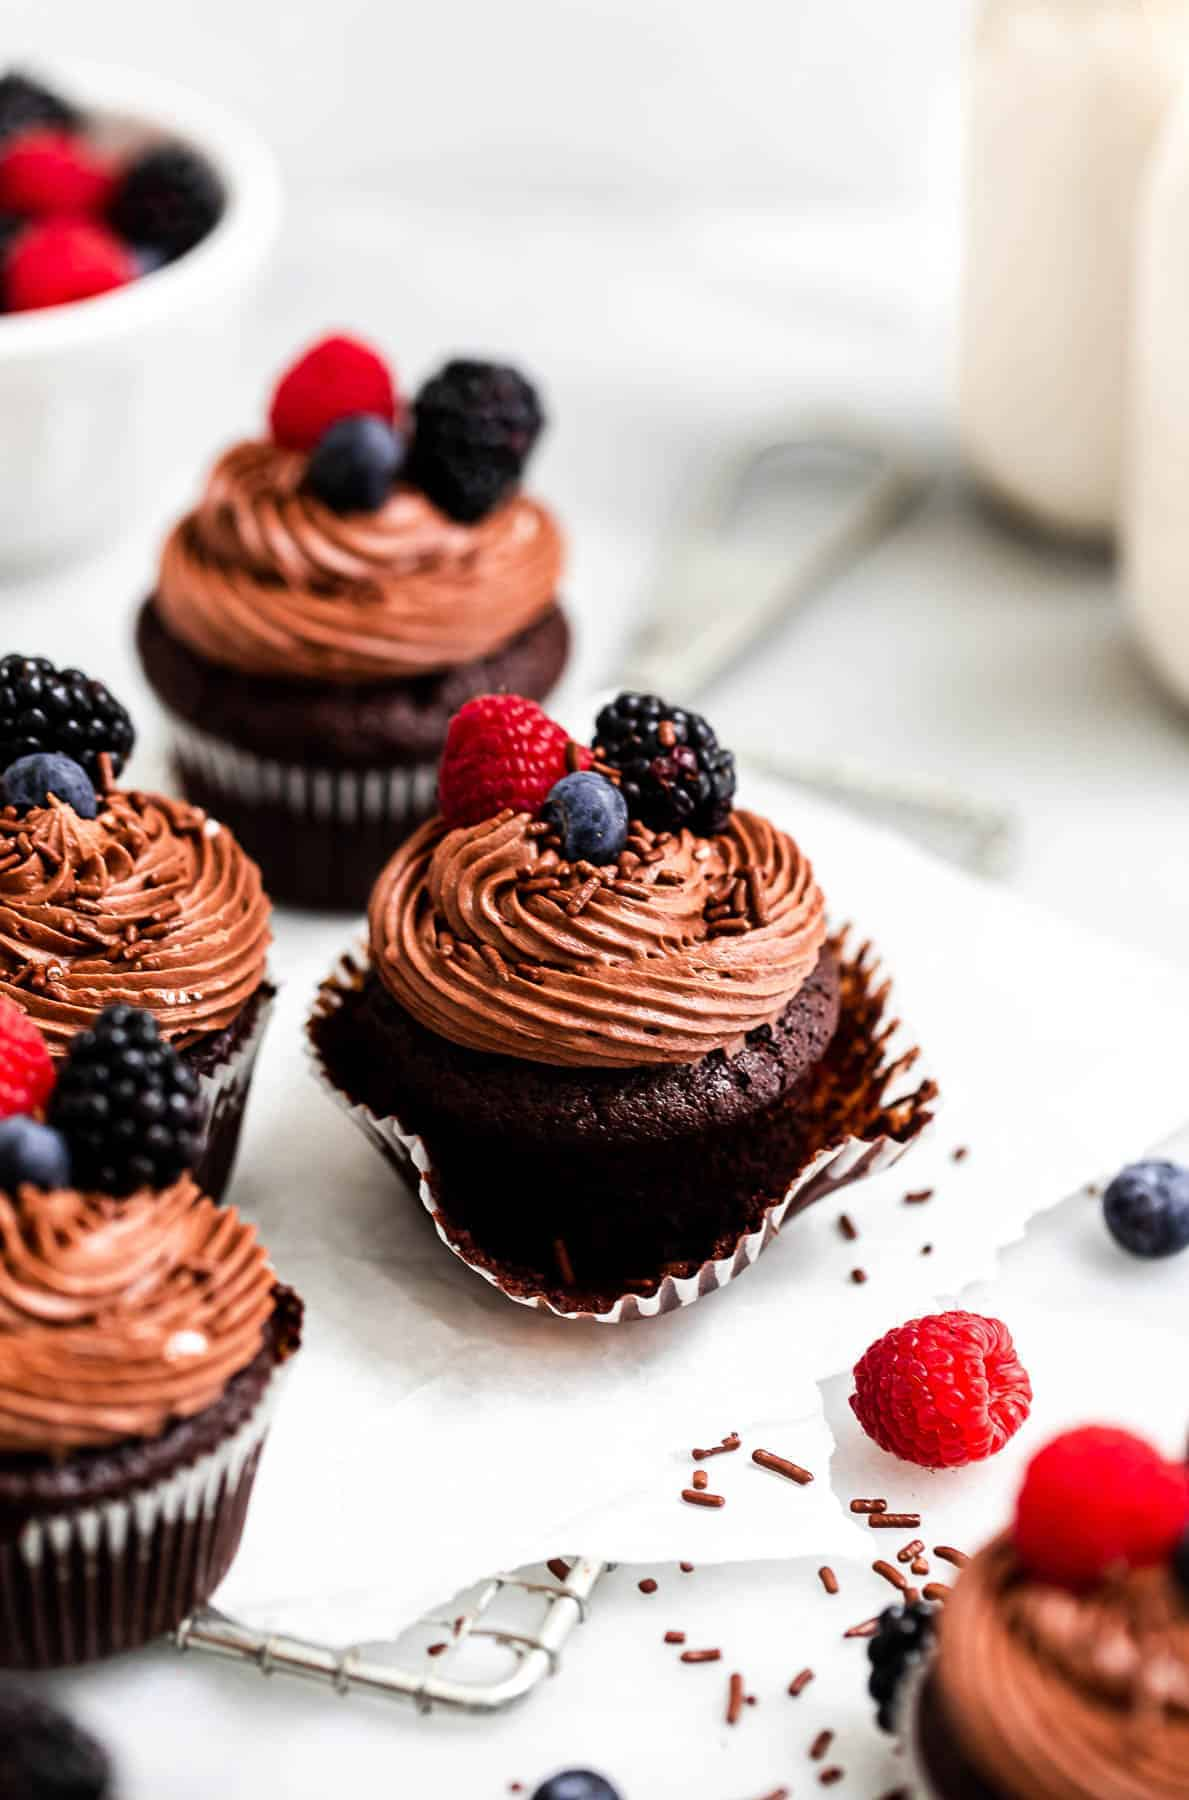 almond flour chocolate cupcakes with frosting and berries on top